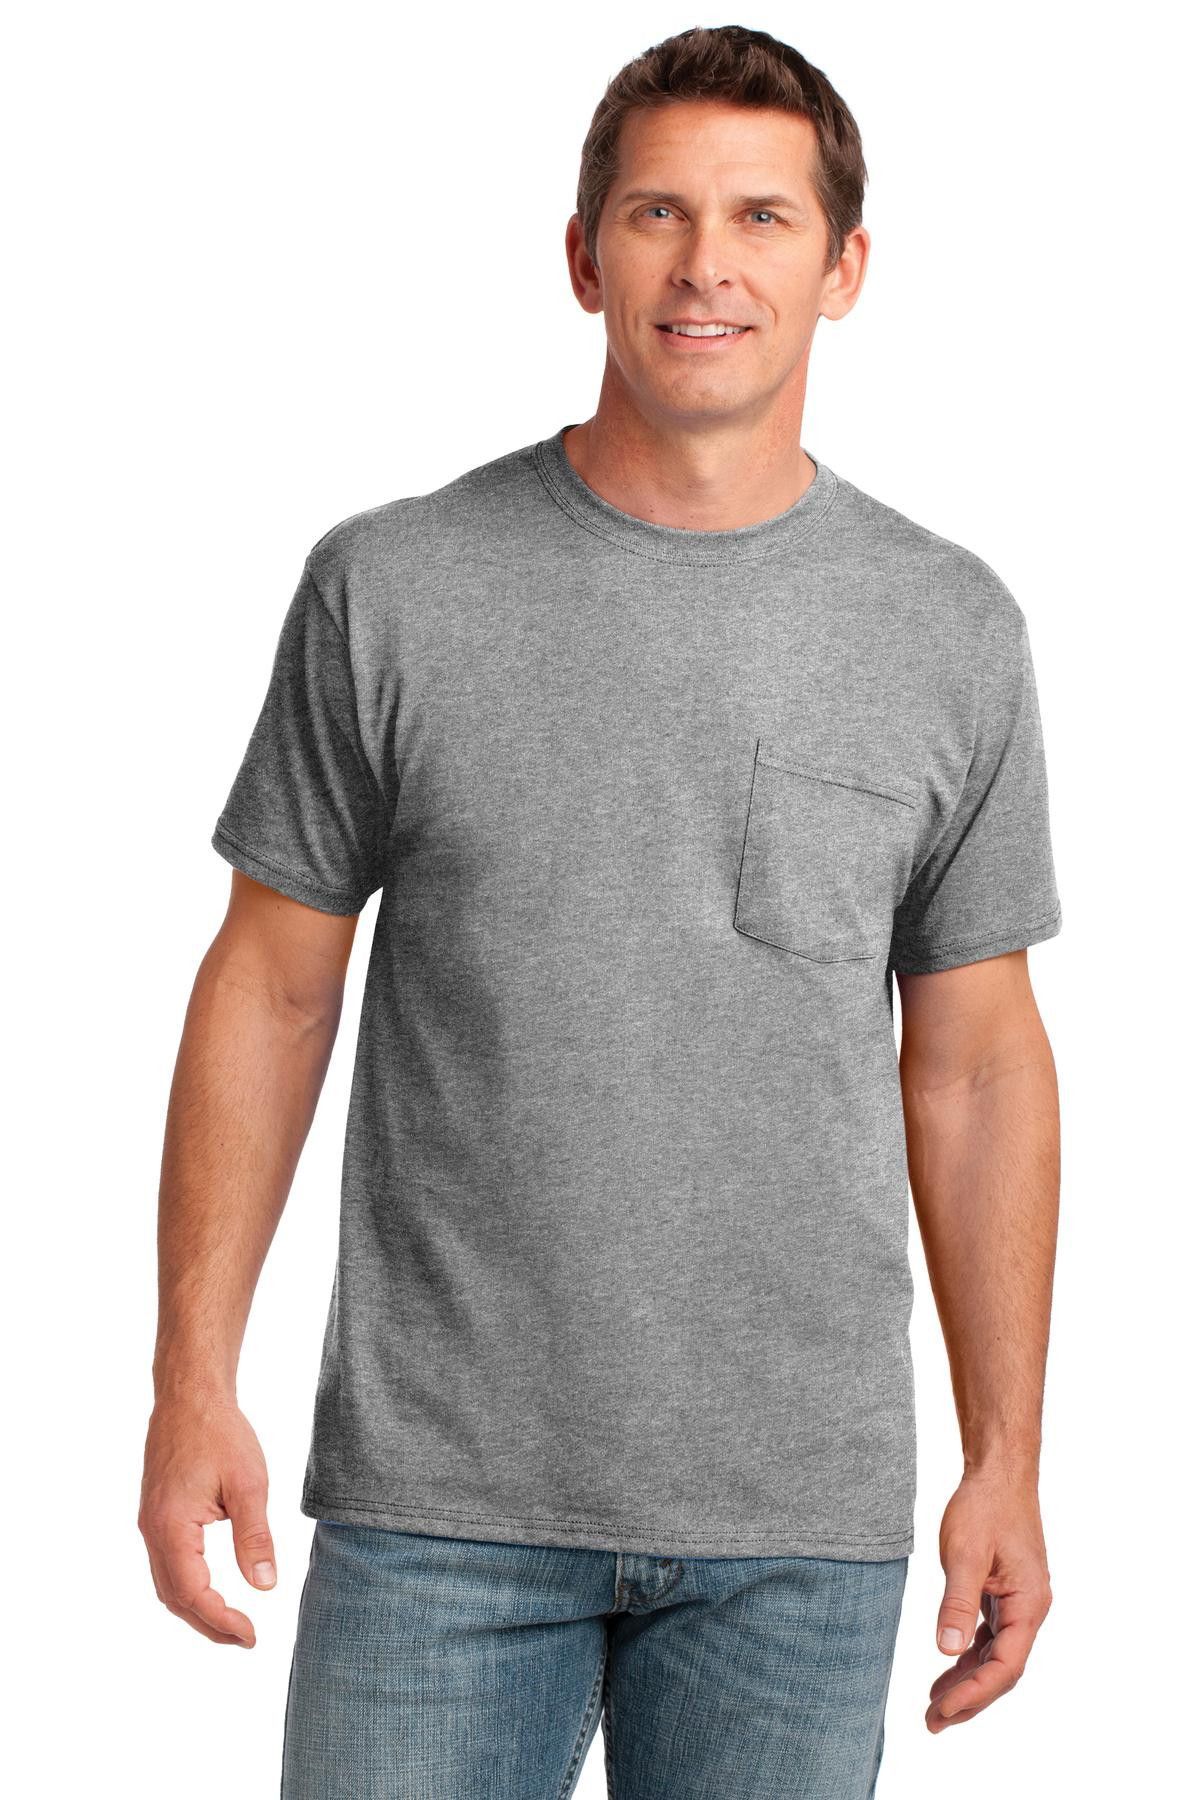 bd9a200f42b5 Port & Company 5.4-oz 100% Cotton V-Neck T-Shirt. PC54V Athletic Heather